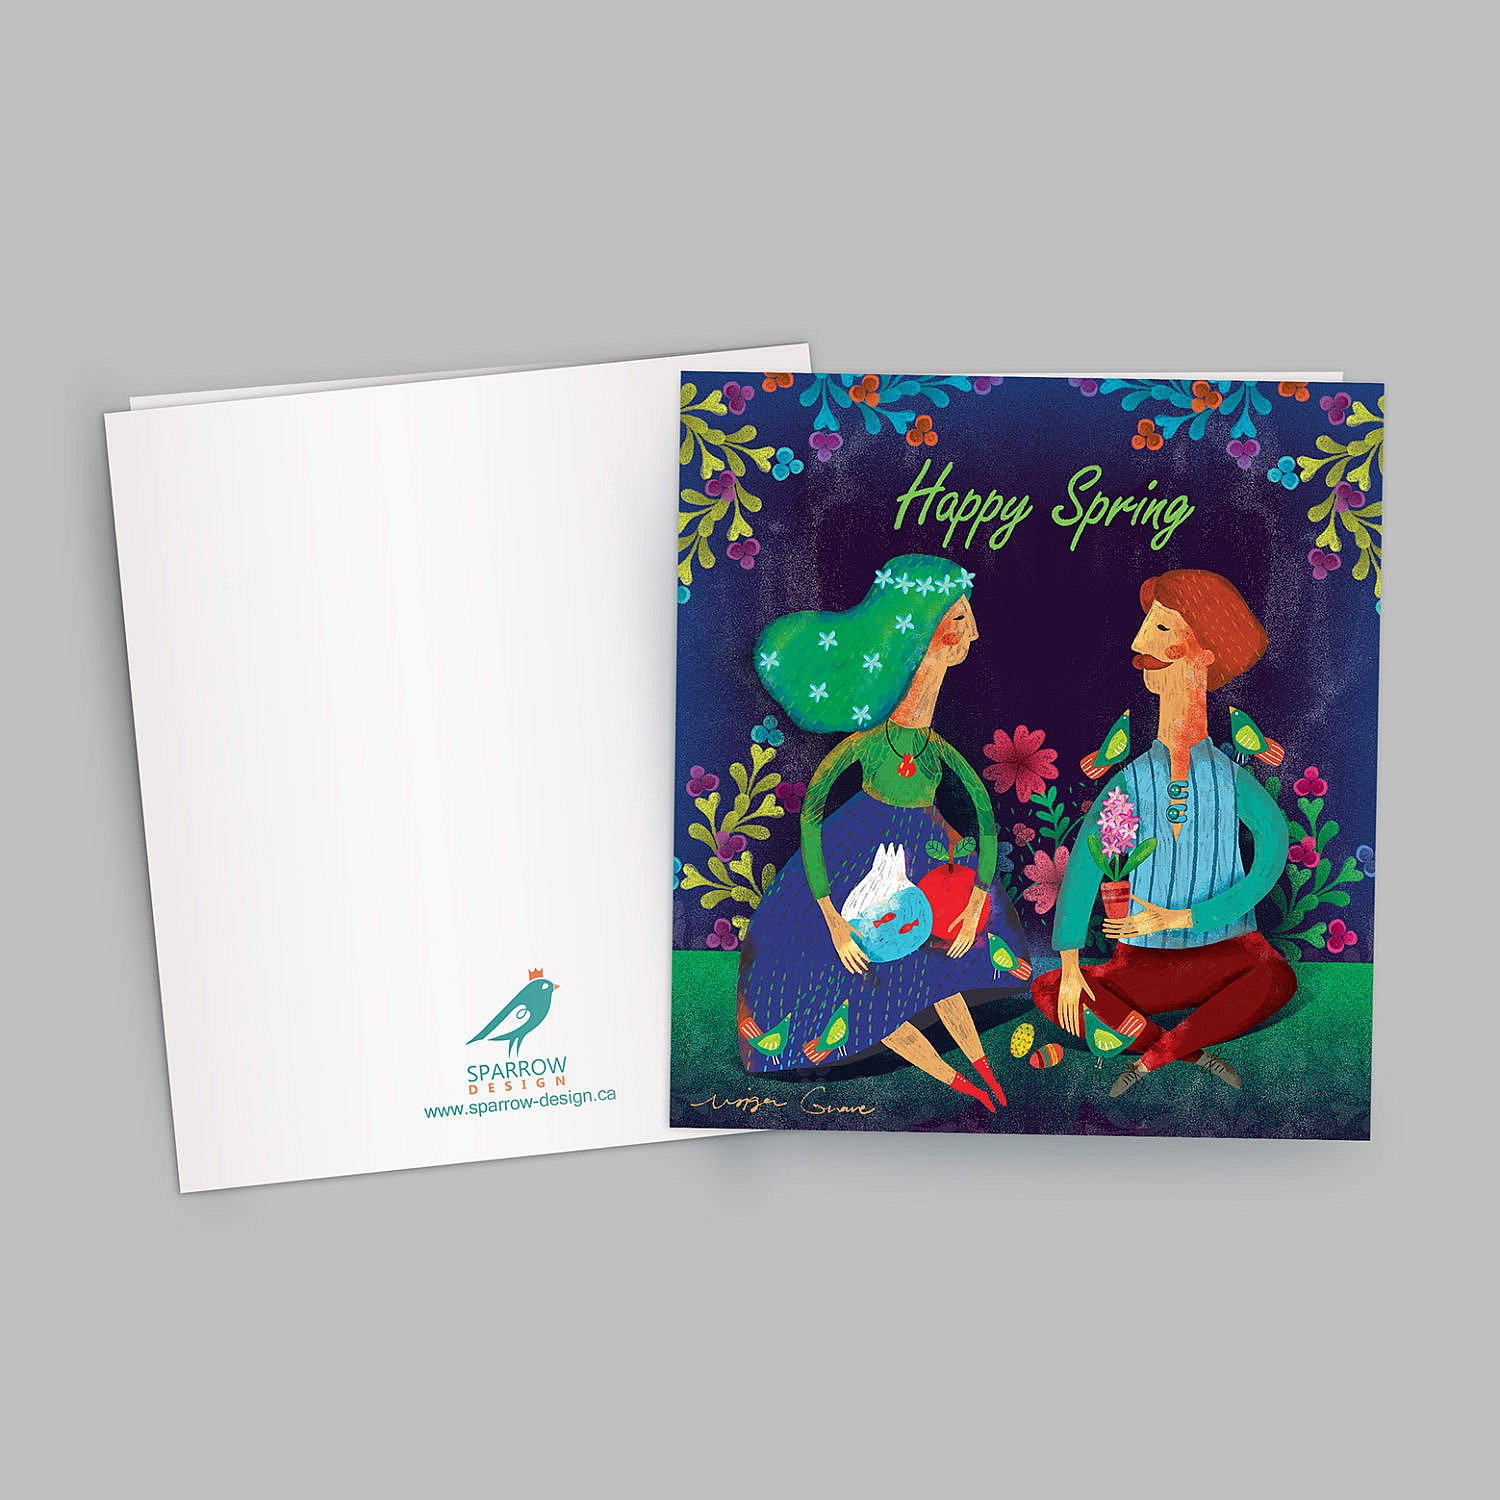 The image includes an illustrated greeting card which is designed to celebrate Spring. The image shows two lovers inside a garden and they are surrounded with flowers and birds. The male lover holds flowers and the female one holds a tank of water which contains goldfishes and also she has a red apple. In the background there are colorful flowers. The background is blue and green.